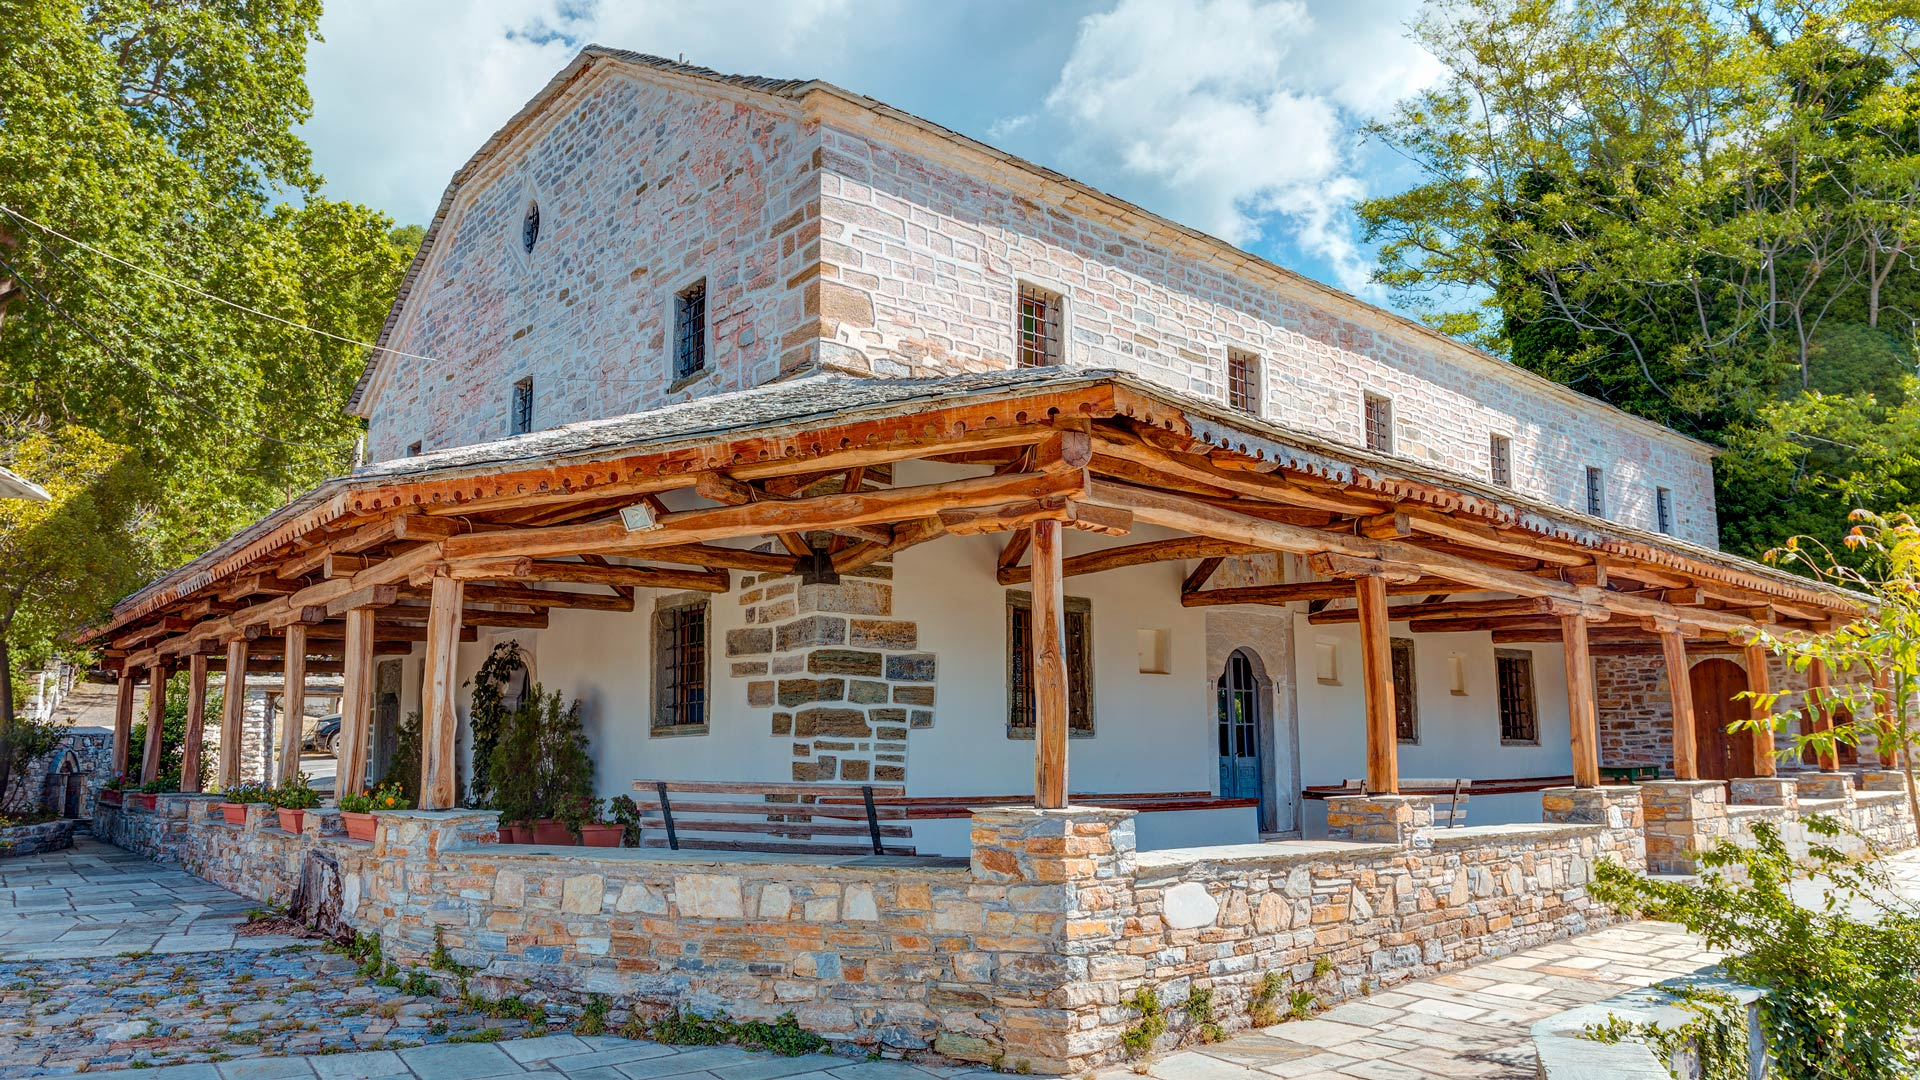 Vyzitsa is one of the highlights of Pelion, with cobblestone streets, slate-roofed mansion houses and a village square with a centuries-old plane tree